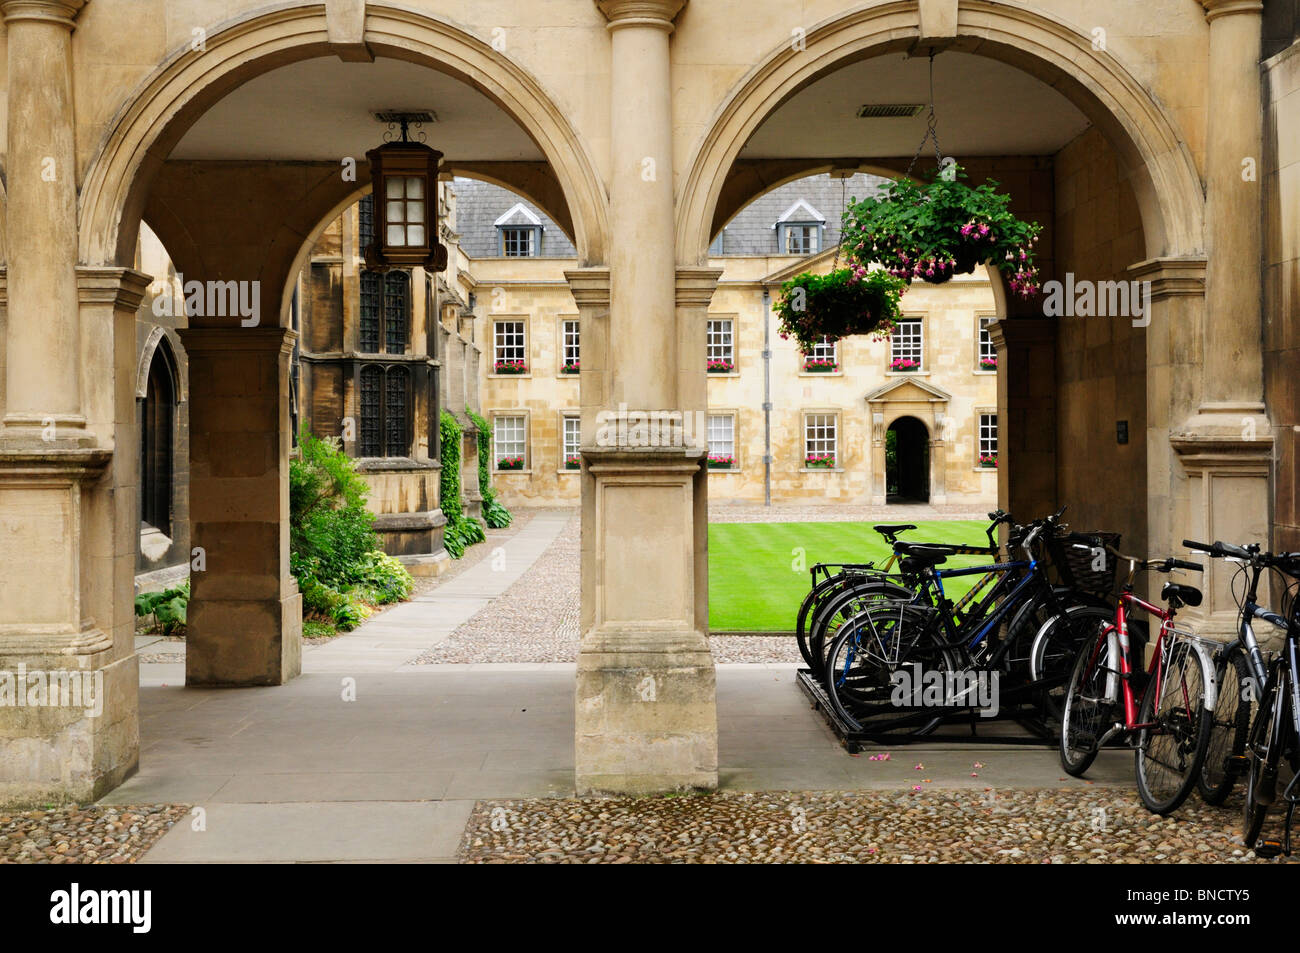 Peterhouse College, Cambridge, England, UK - Stock Image